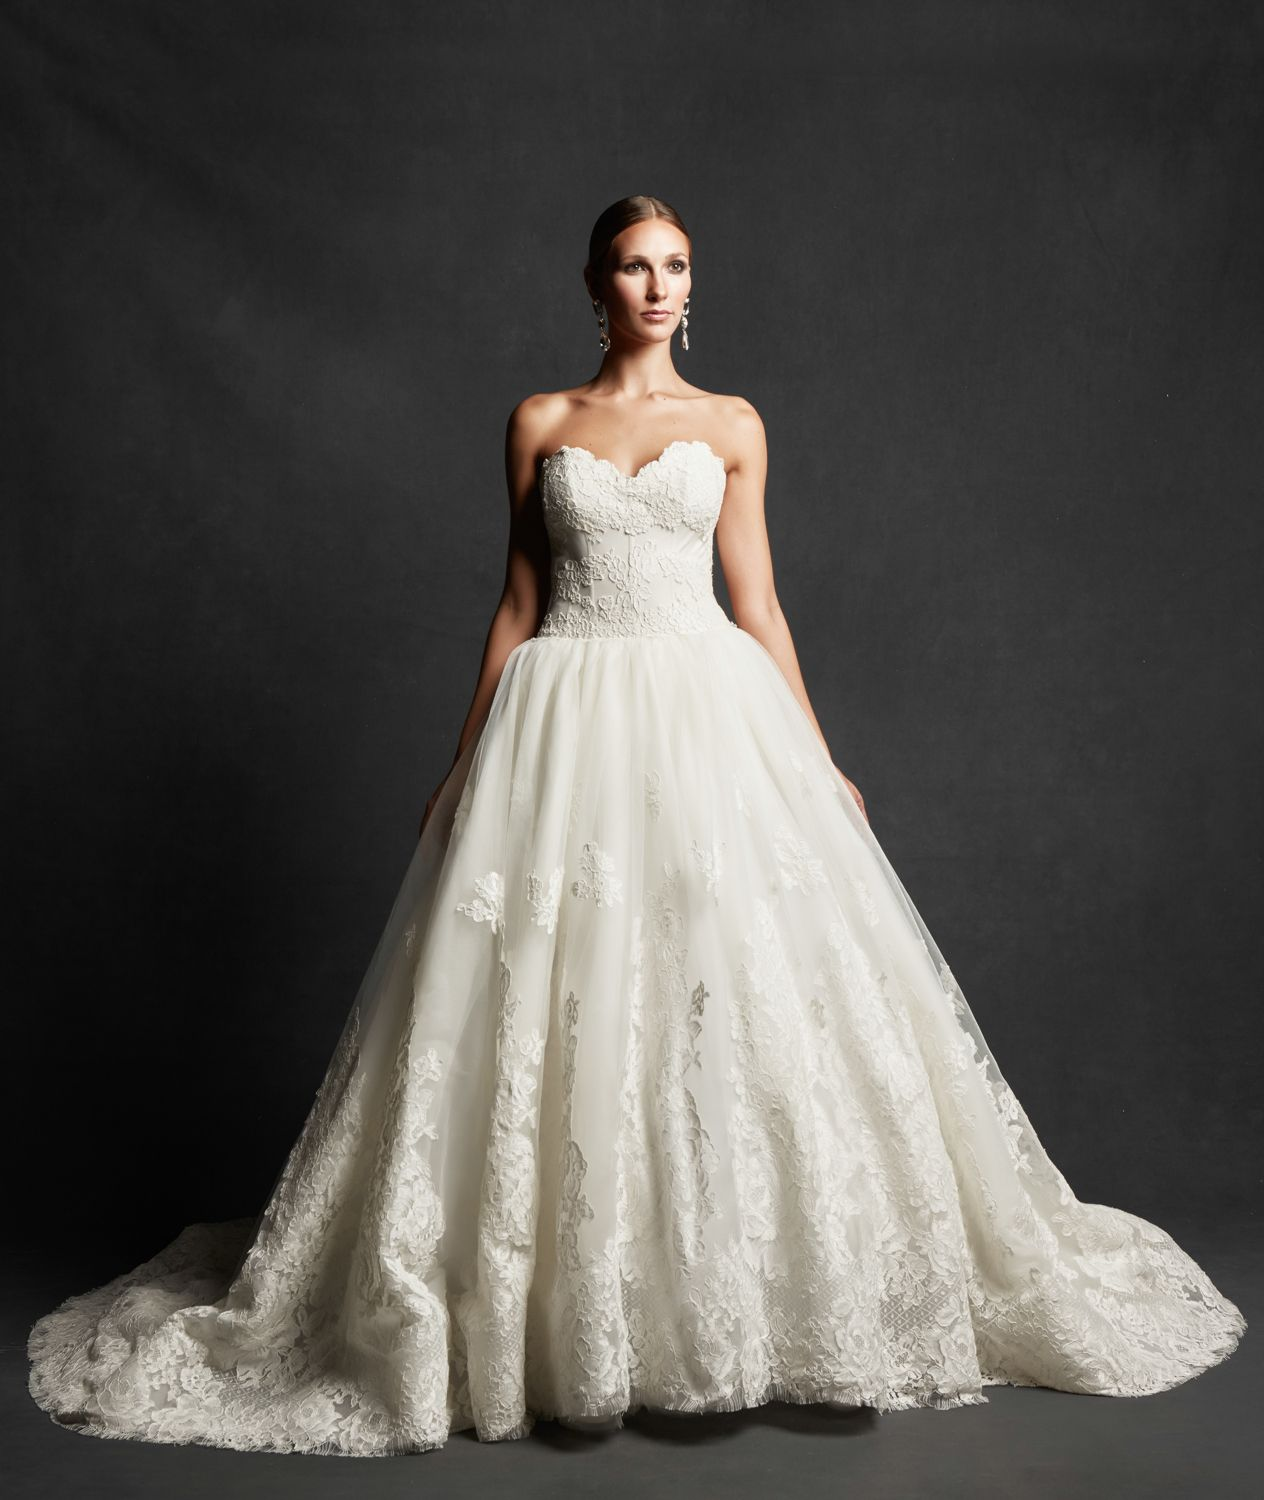 David S Bridal Collection Strapless Tulle Ball Gown With: Strapless Ball Gown With Appliqued Rose Lace On